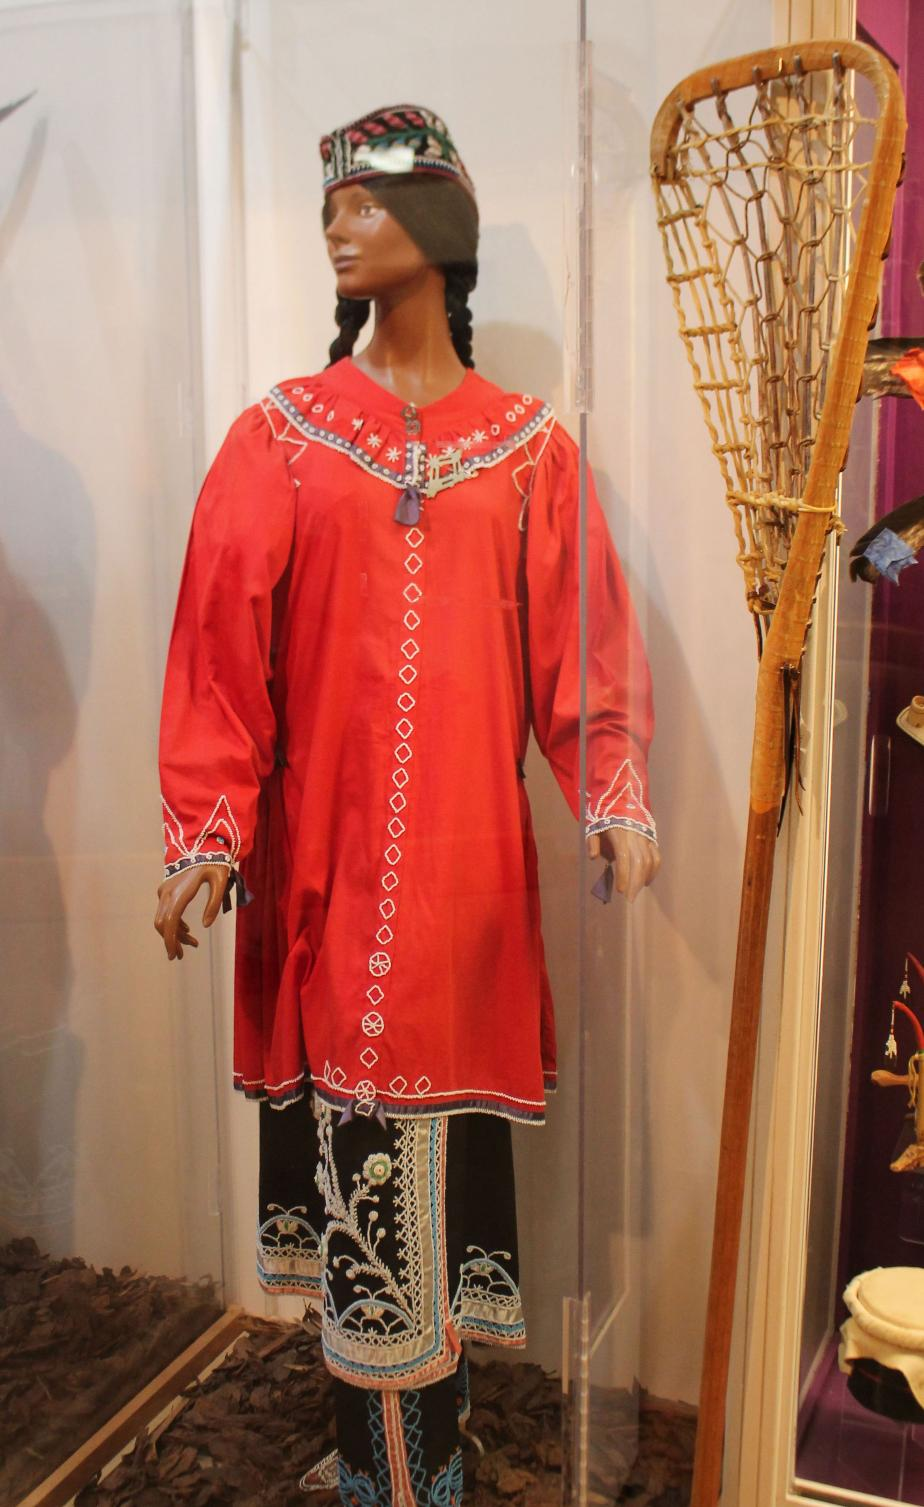 NH Indian Museum - Indian Clothing